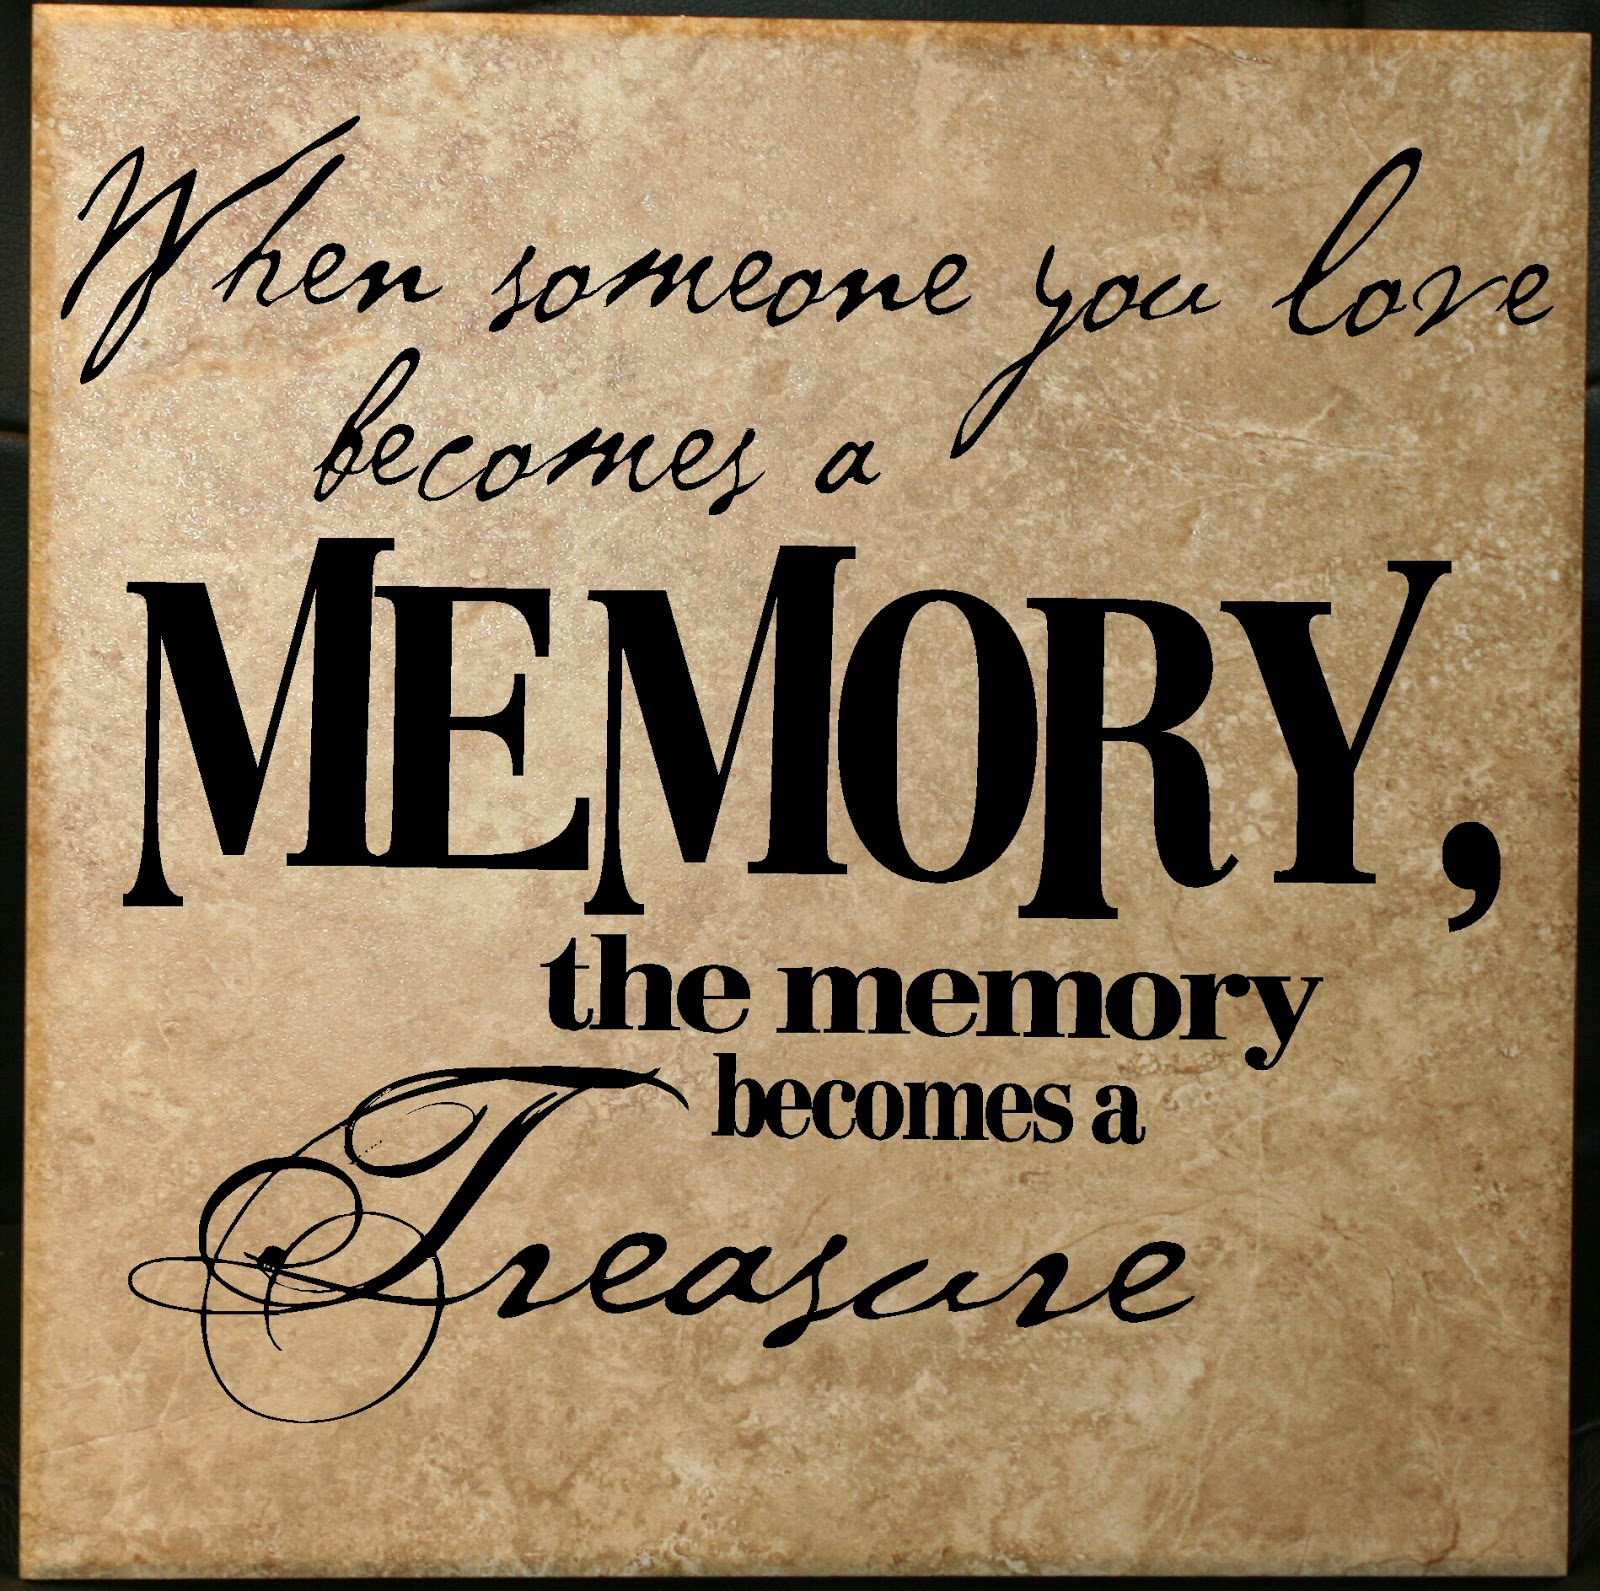 0d8ceb1c252e909a D B JPG Quotes About Elephants Memory 46 Quotes U2013  Remembering A Loved One Quotes